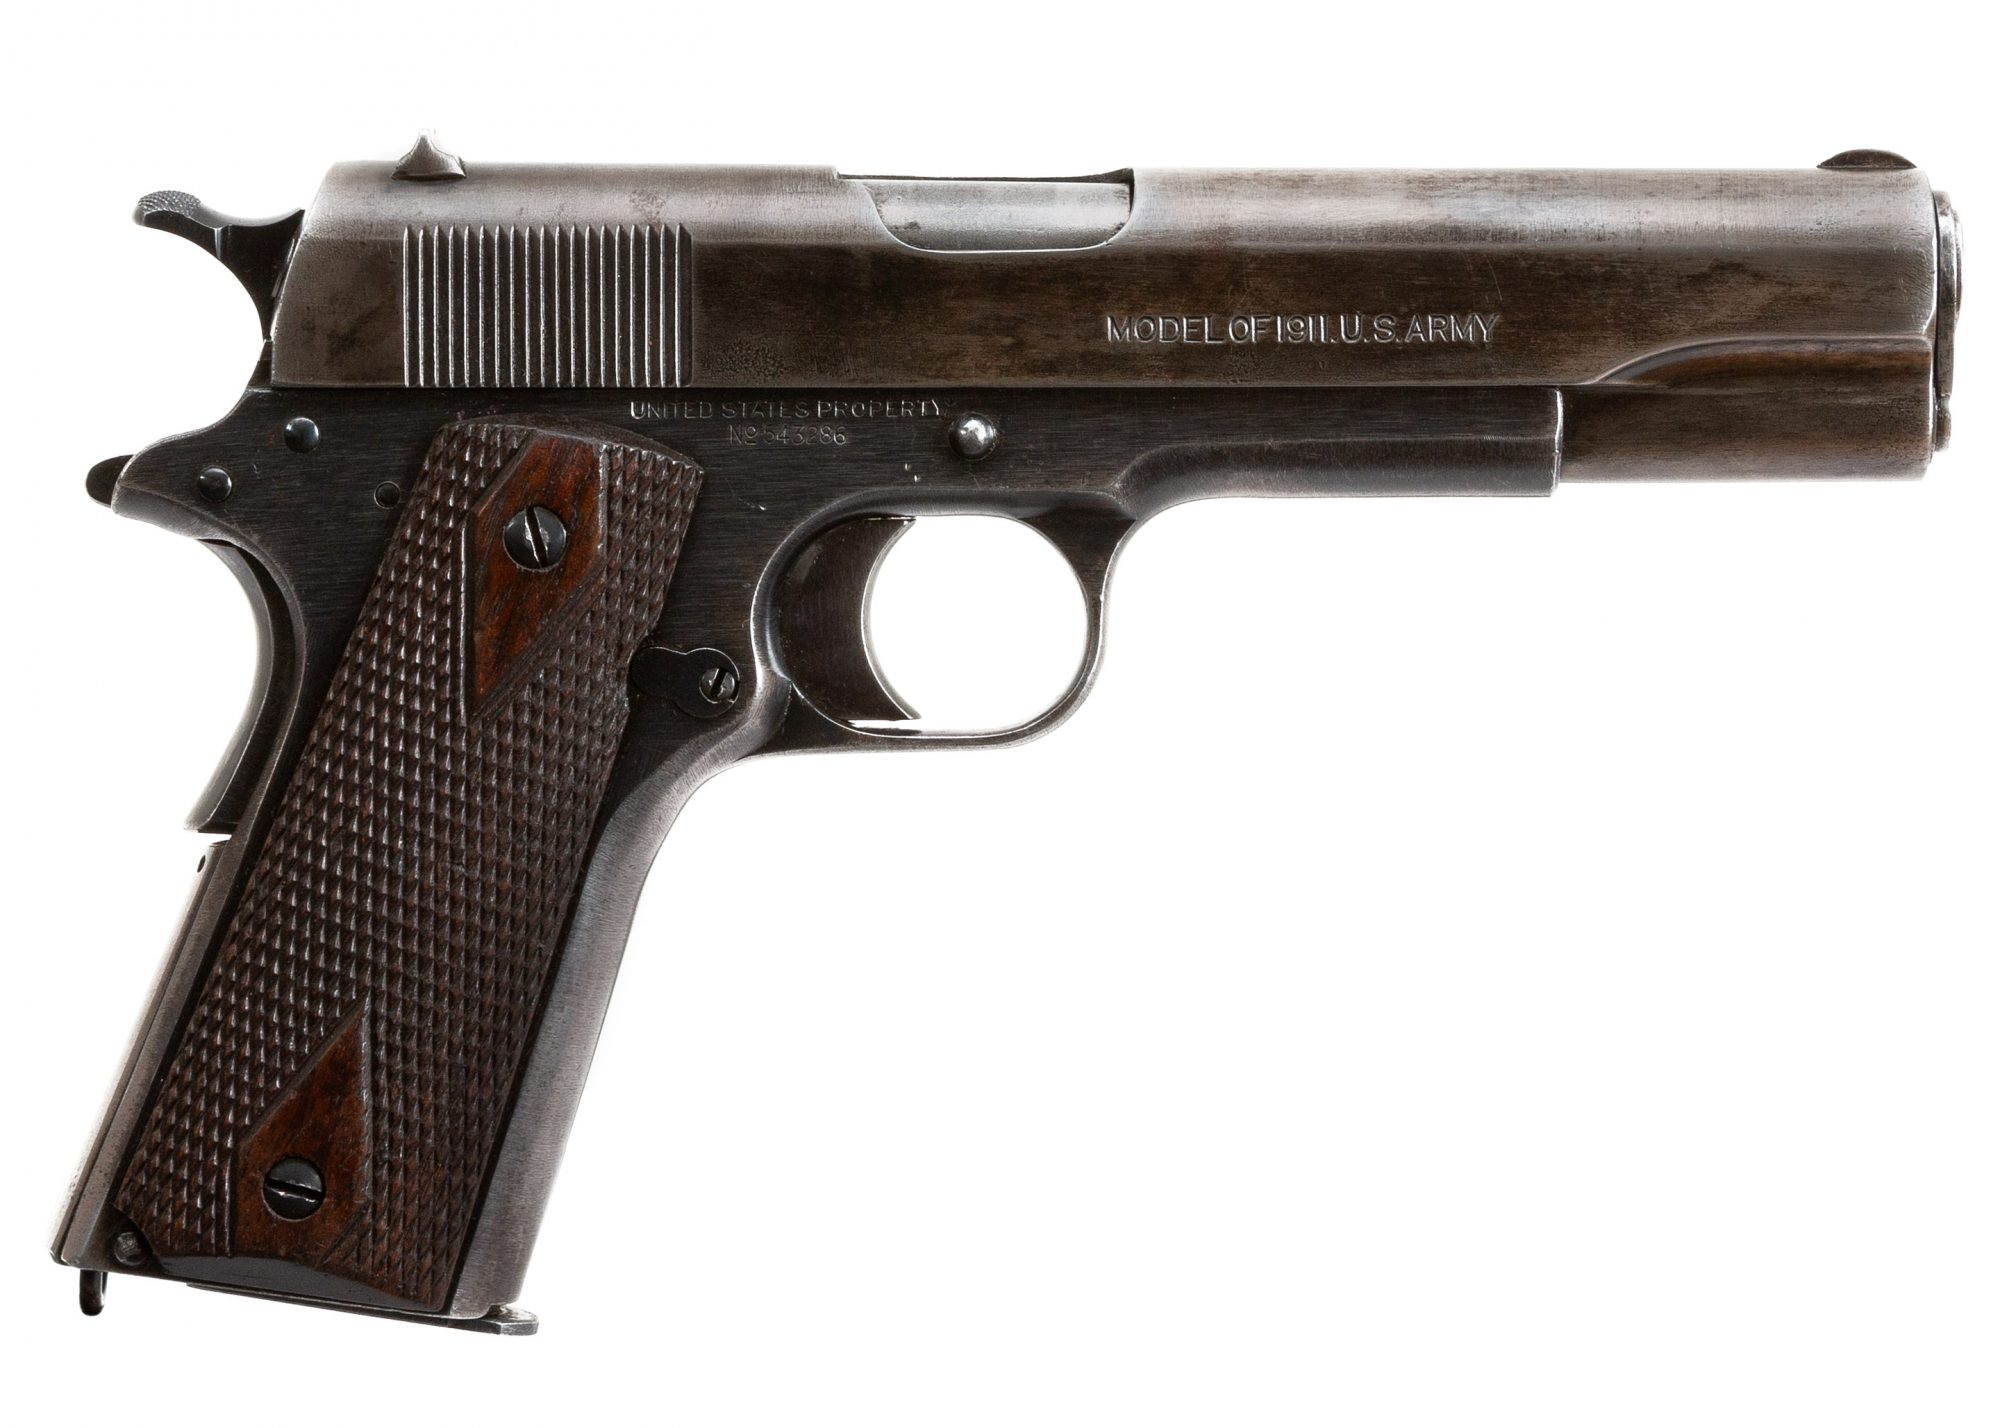 Photo of a pre-owned Colt Model 1911 from 1918, for sale by Turnbull Restoration of Bloomfield, NY